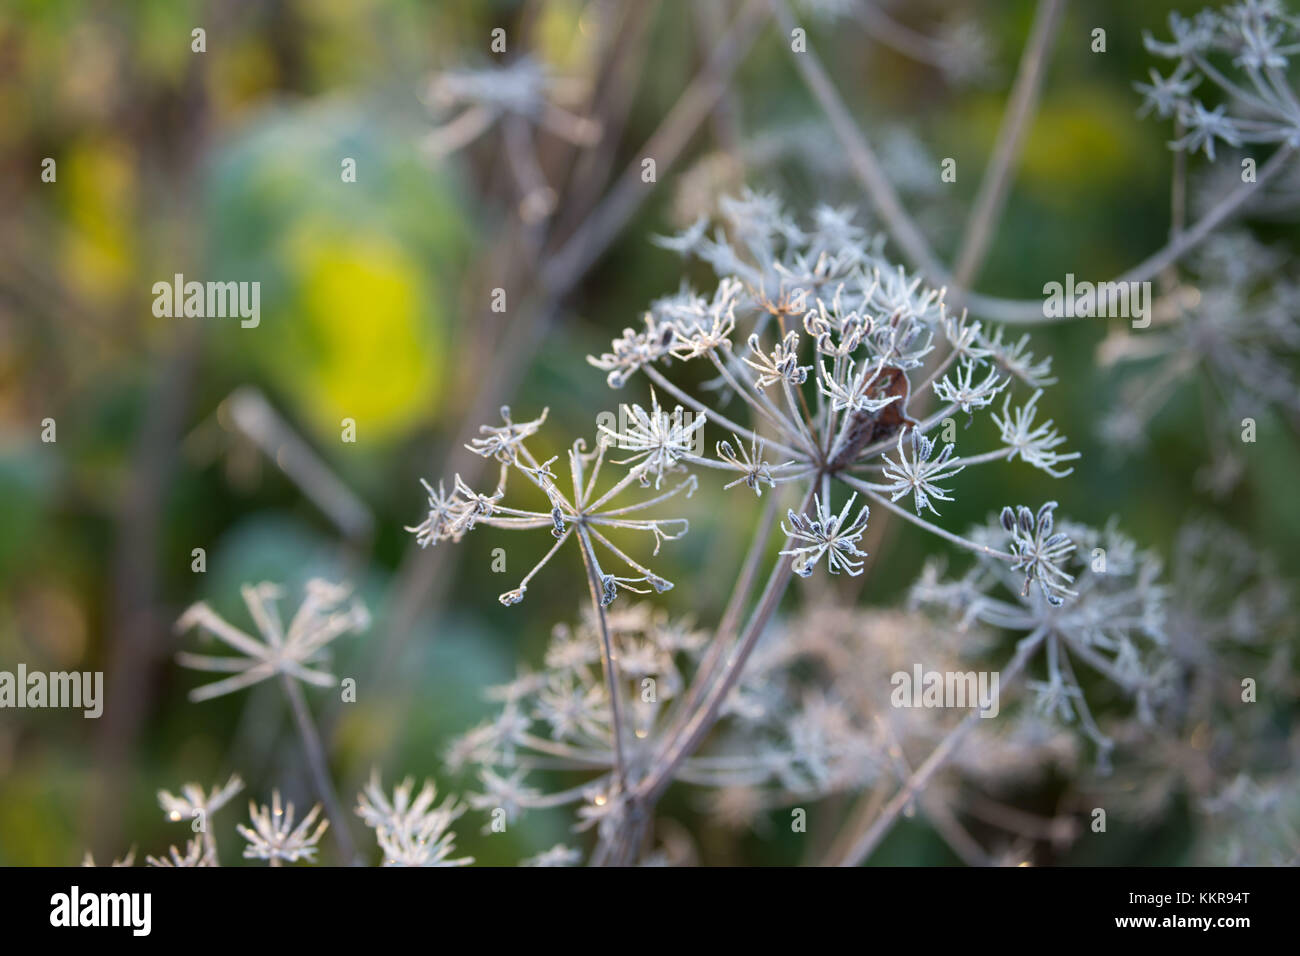 Closeup of frozen plant, blurred background - Stock Image